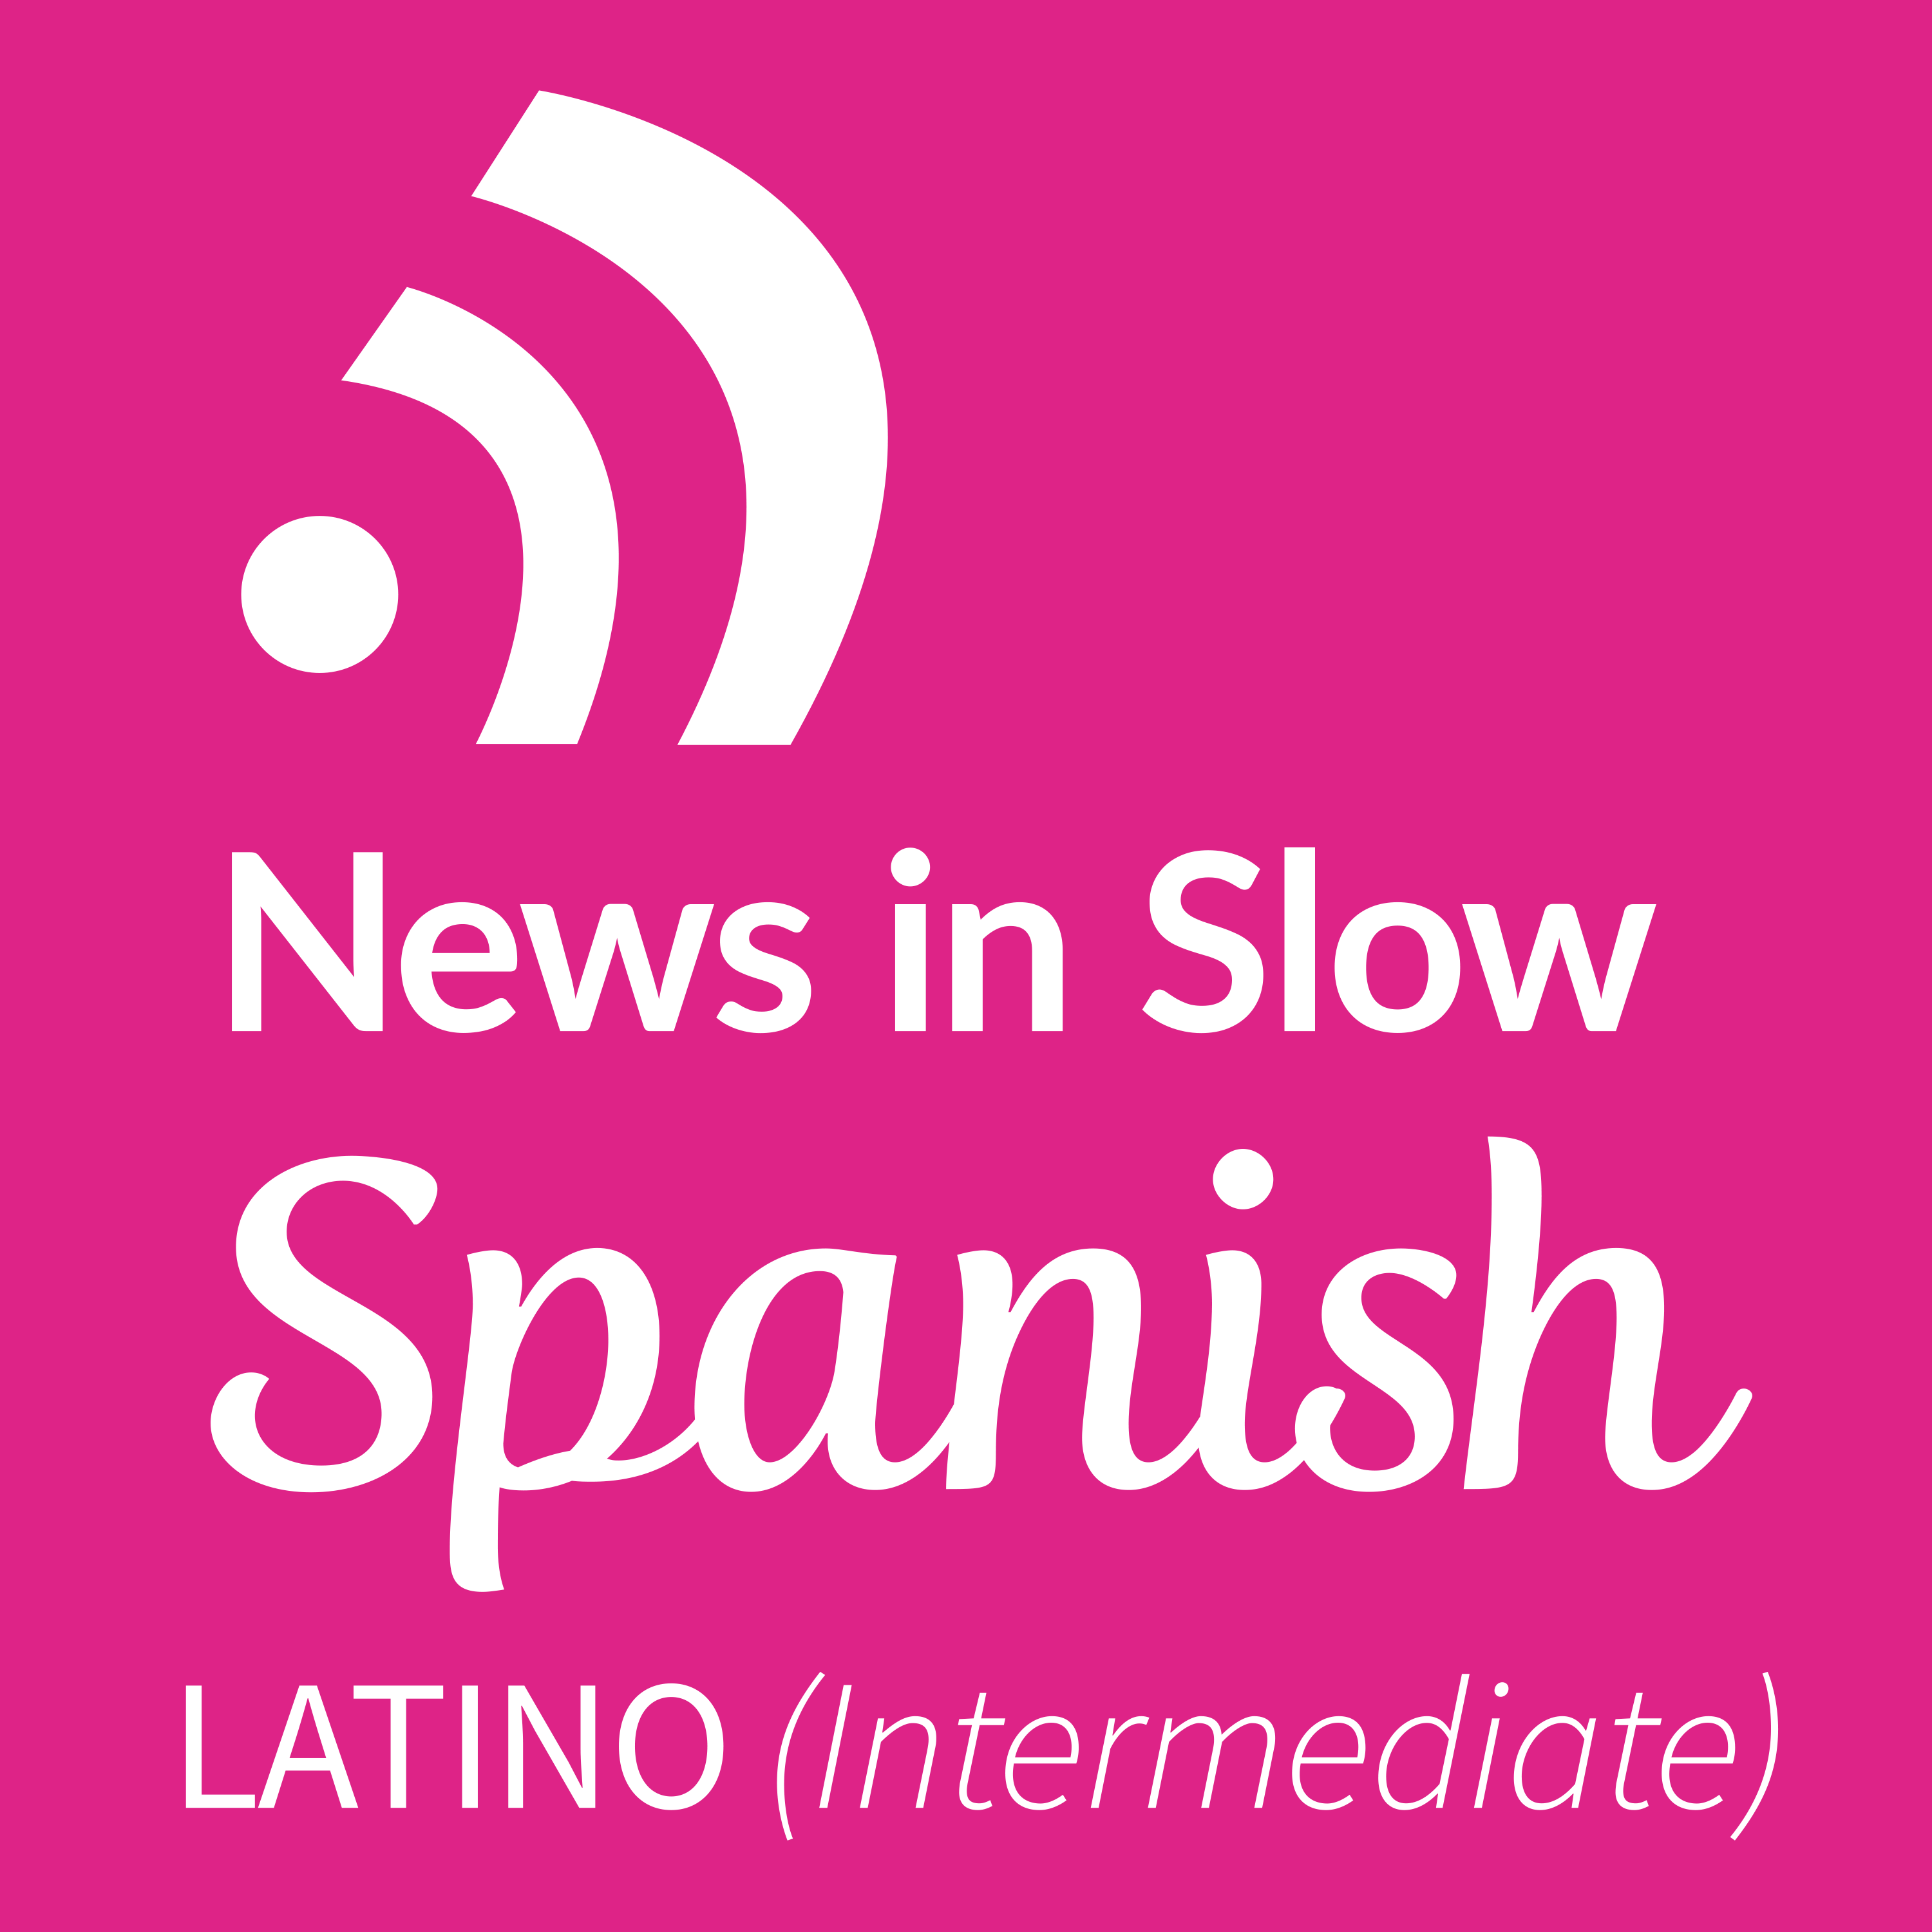 News in Slow Spanish Latino - # 146 - Spanish grammar, news and expressions